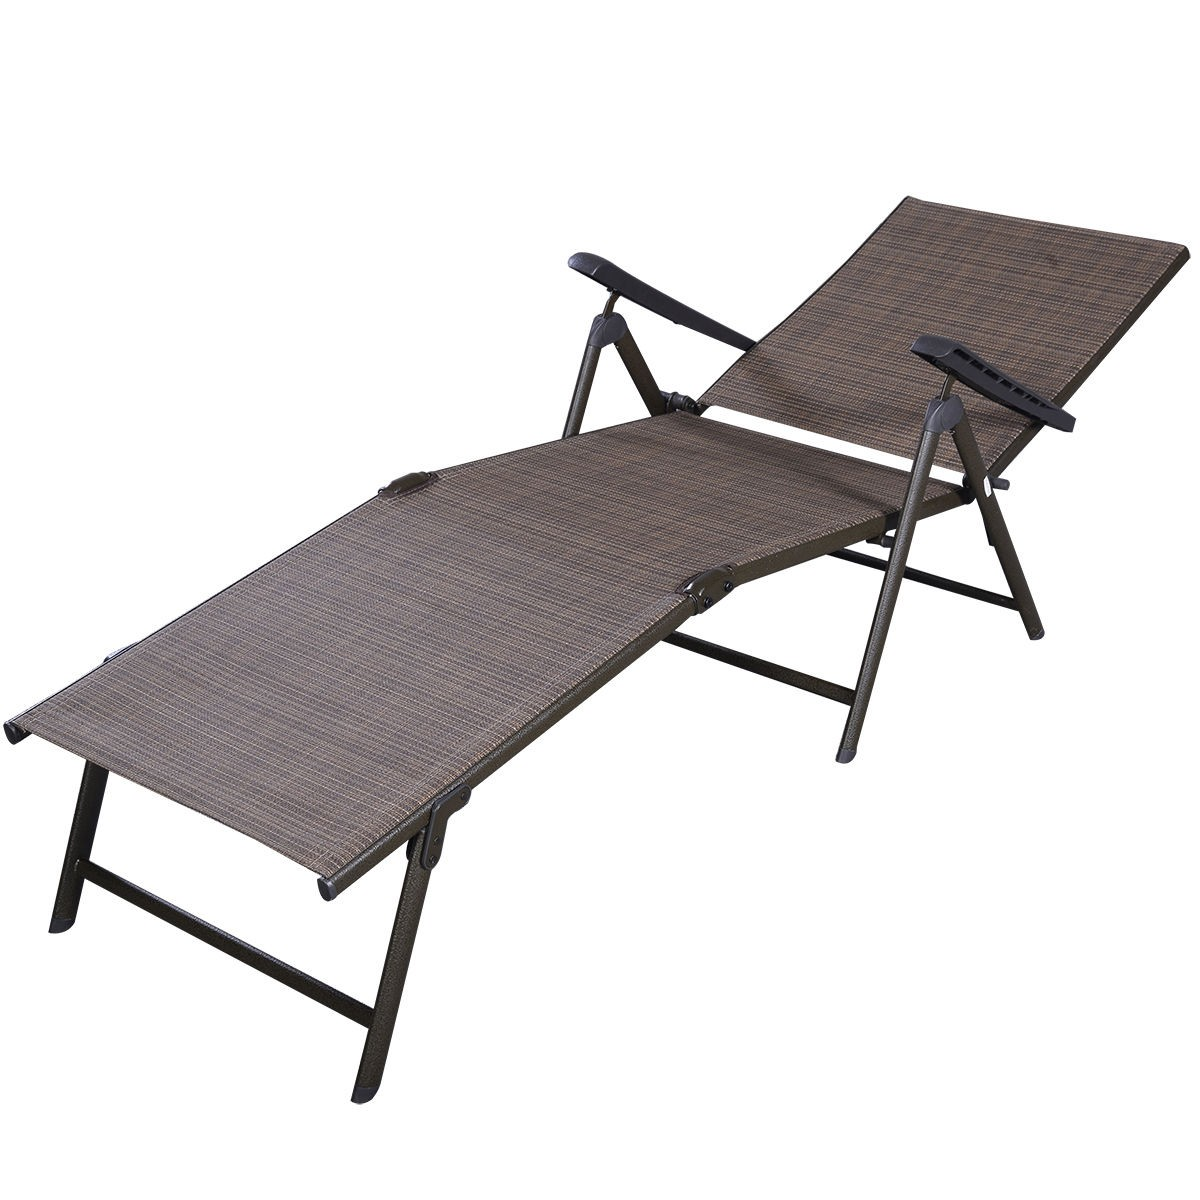 Patio furniture textilene adjustable pool chaise lounge for Patio furniture chaise lounge